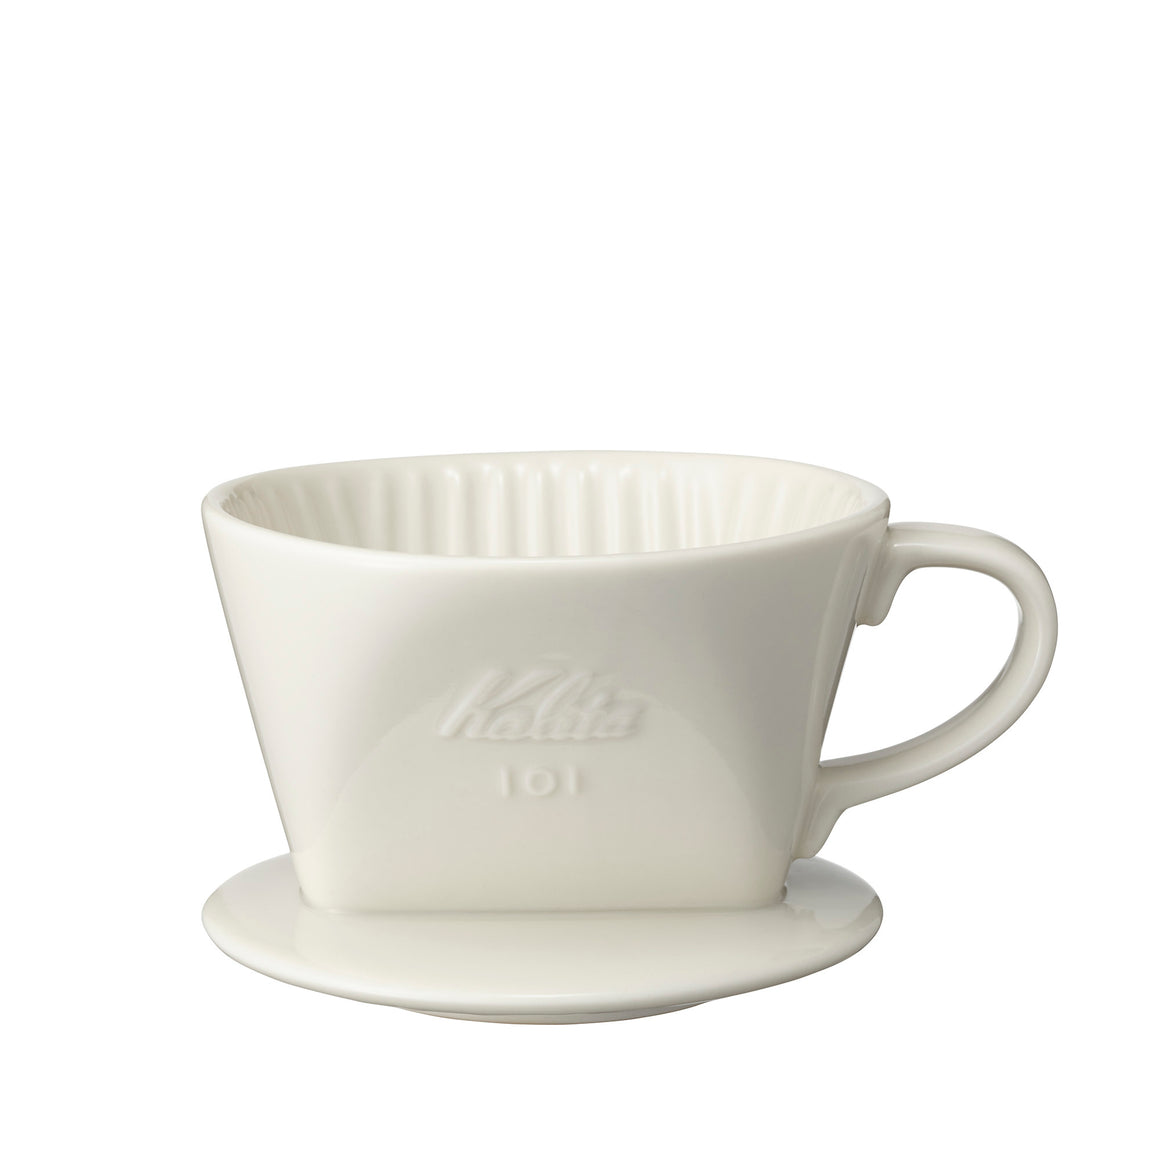 Kalita 101 Ceramic Dripper (White/ Brown) - Hazel & Hershey Coffee Roasters